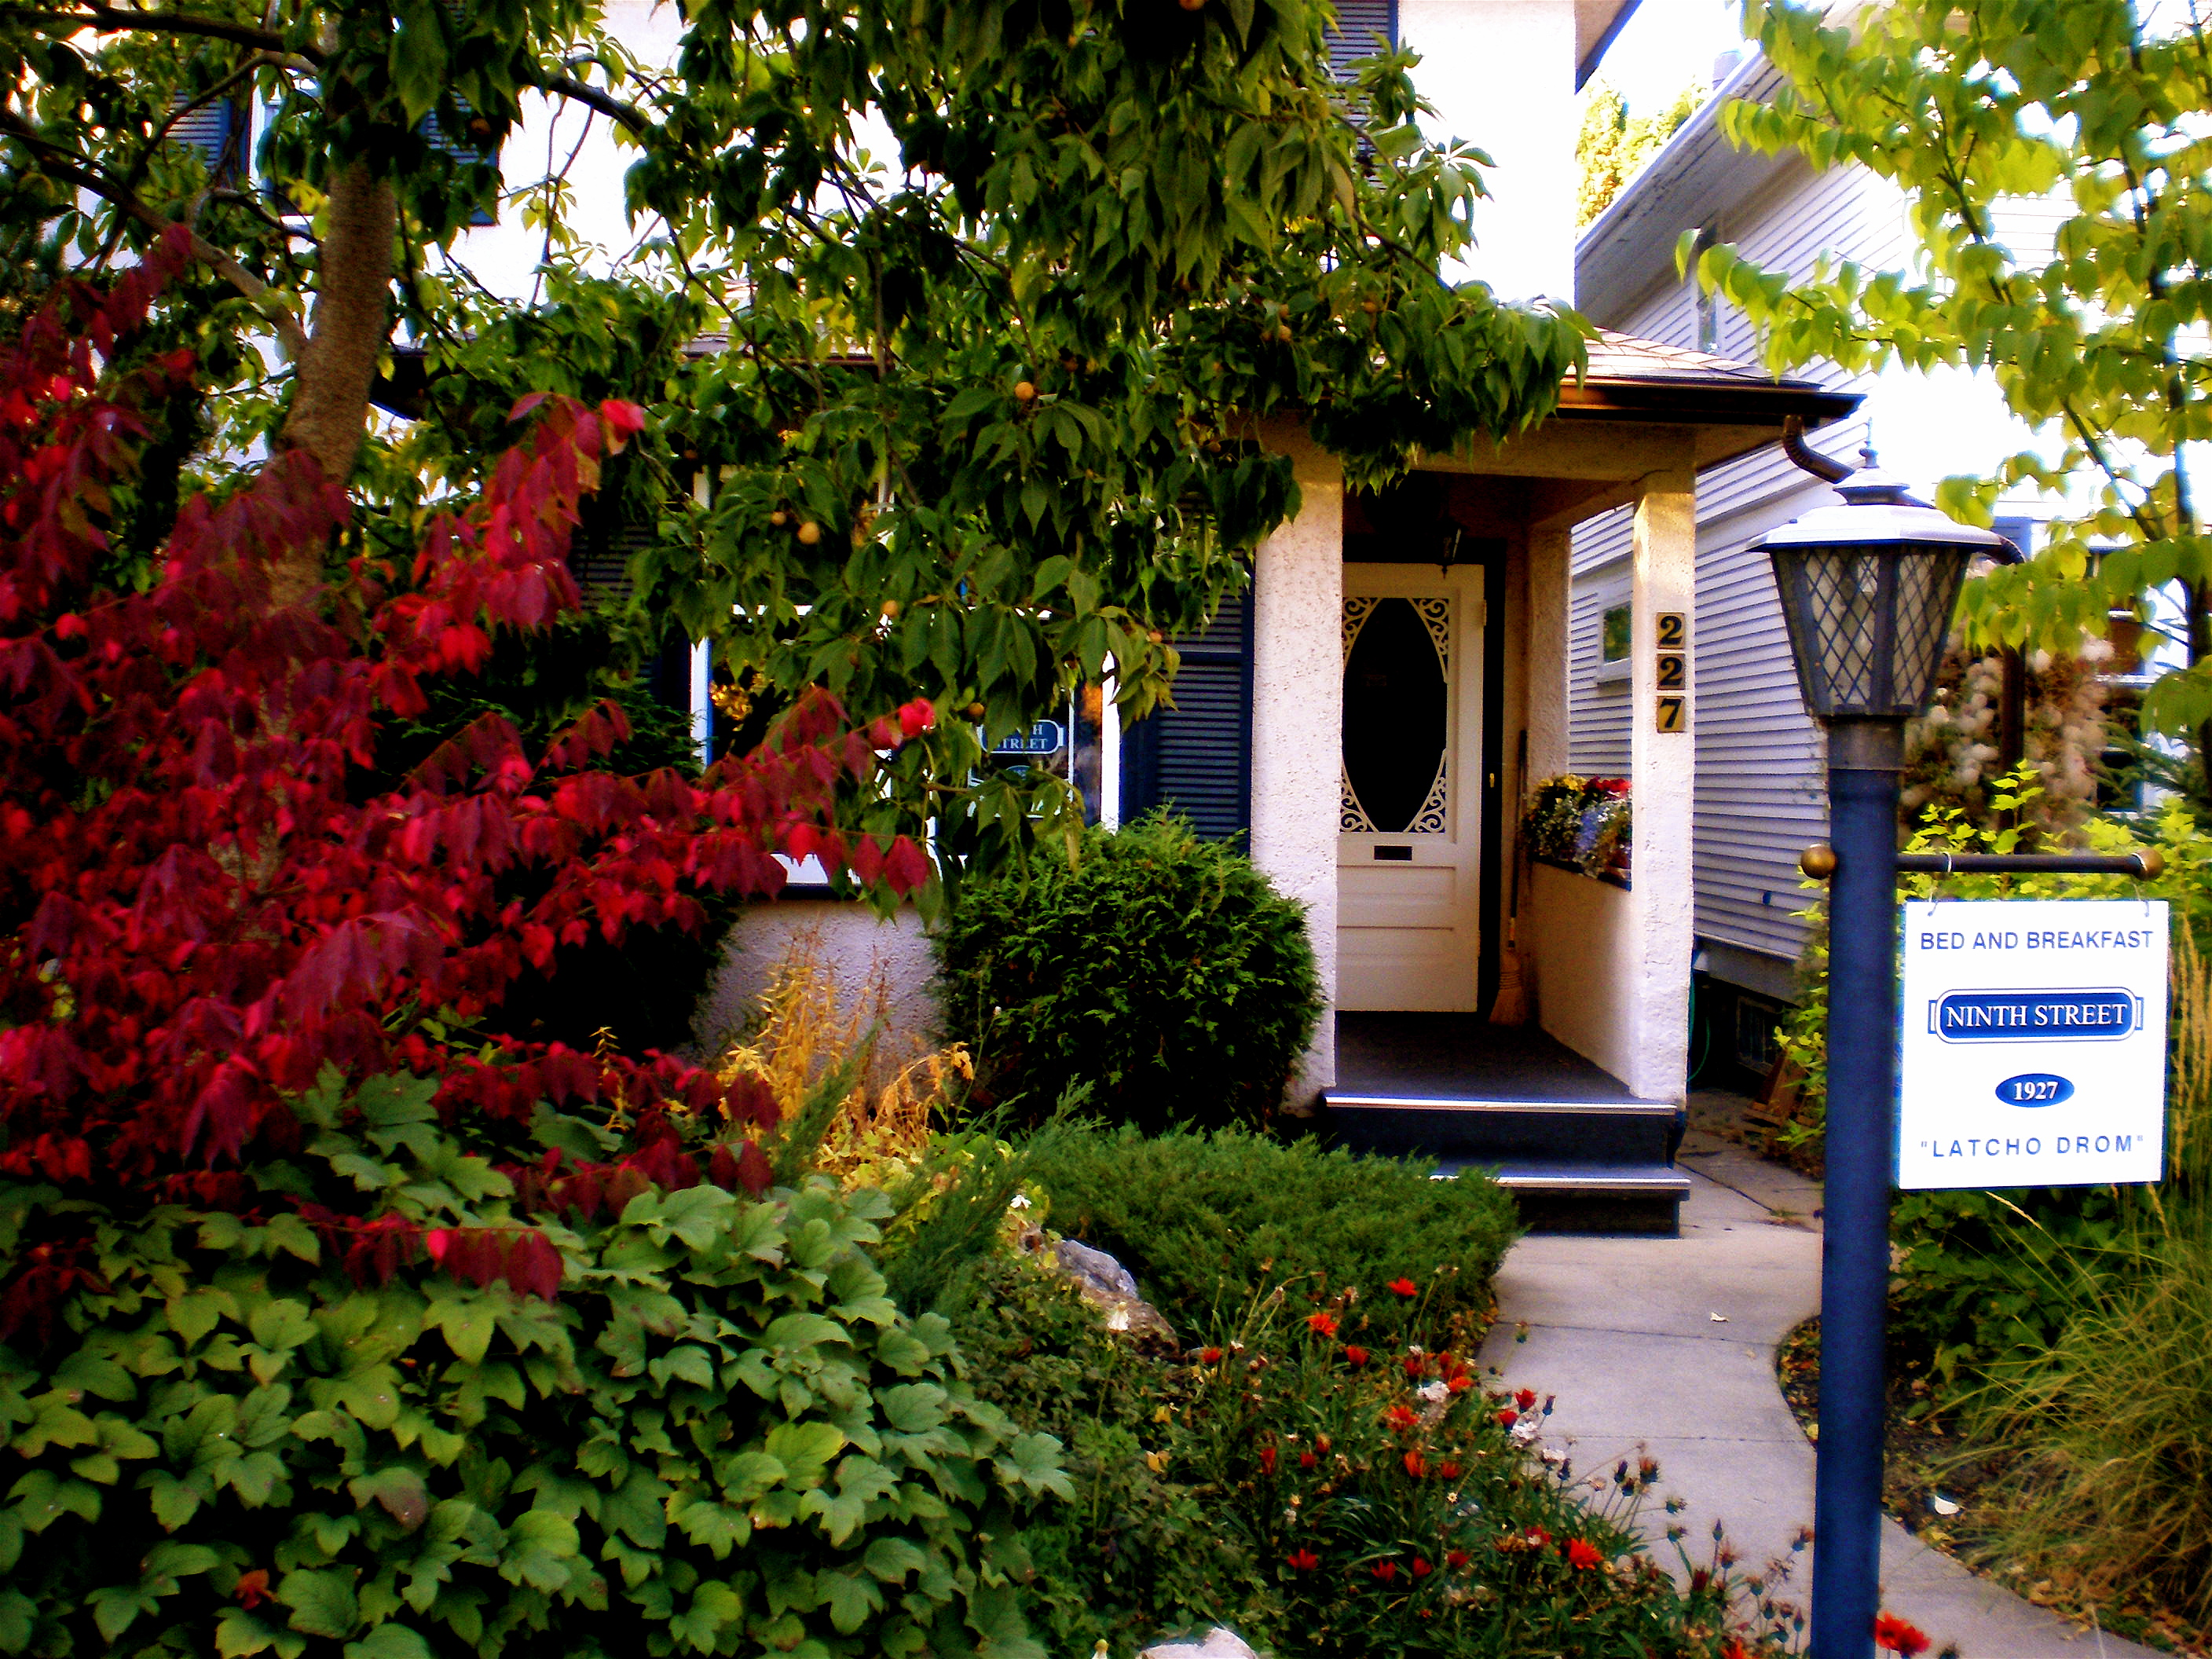 Ninth Street Bed and Breakfast